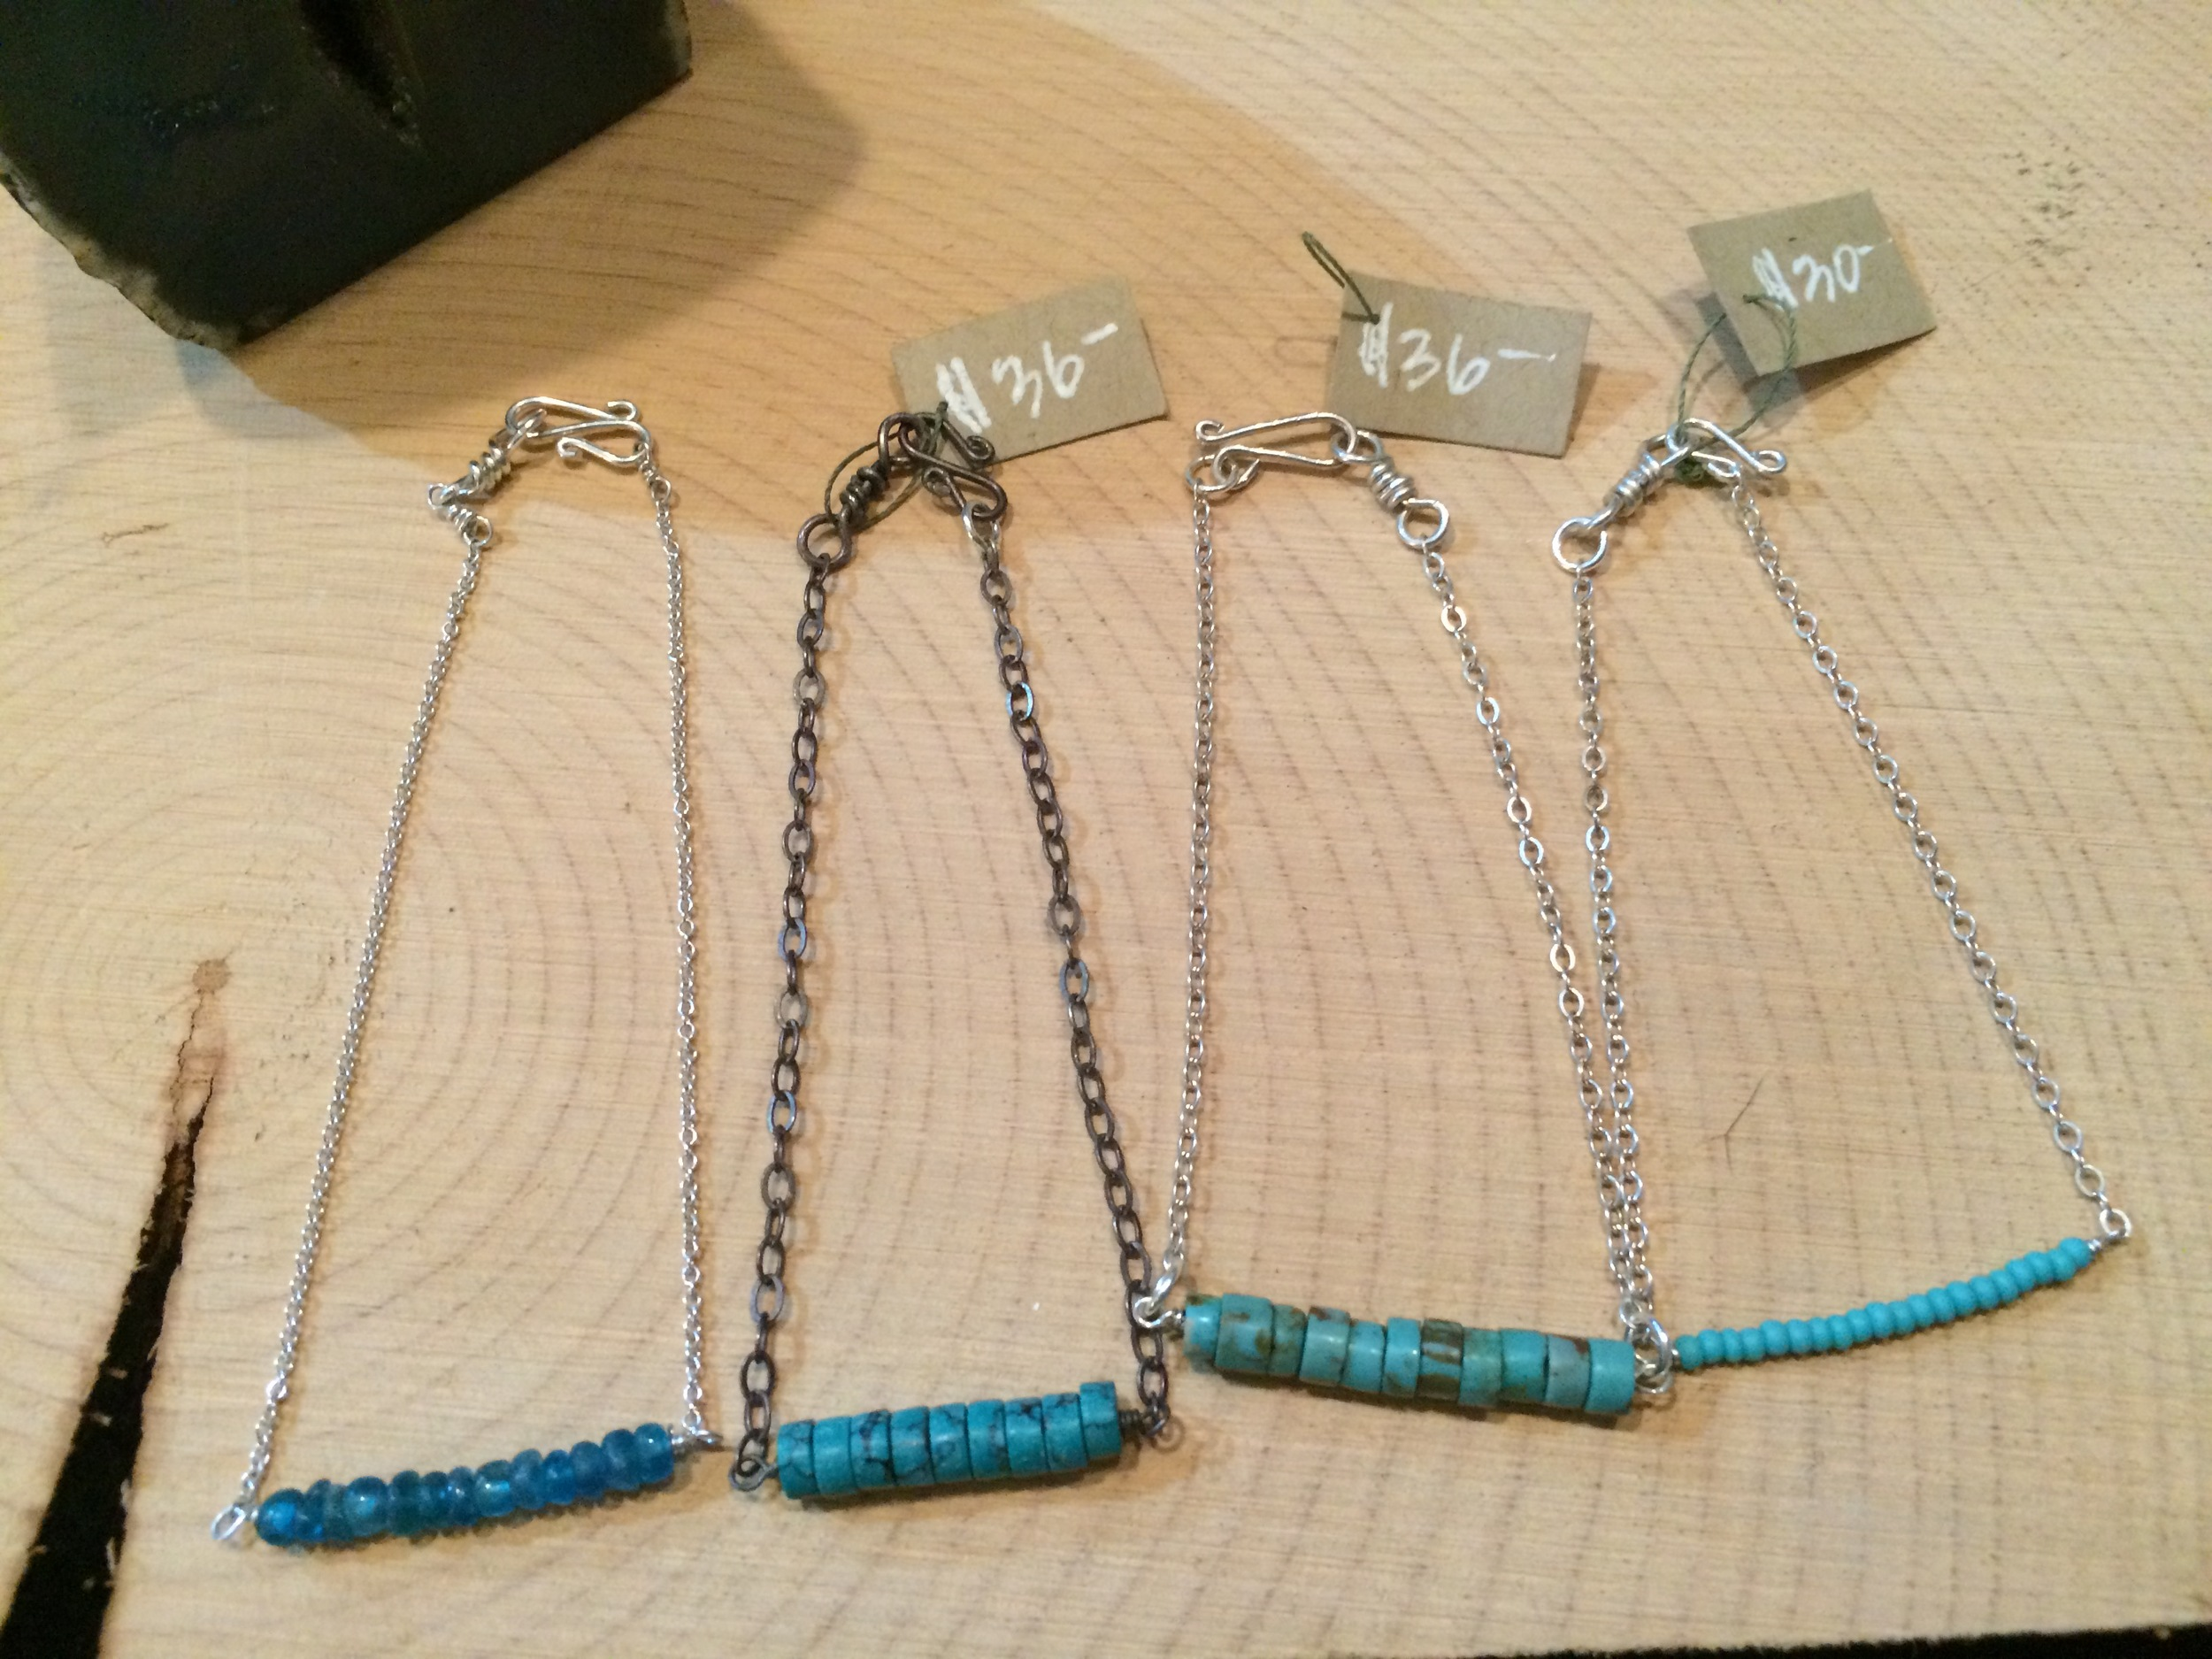 bracelets l to r: apatite + sterling: $36 || turquoise + oxidized sterling silver: $36 || turquoise + sterling silver: $36 || blue glass + sterling silver: $30